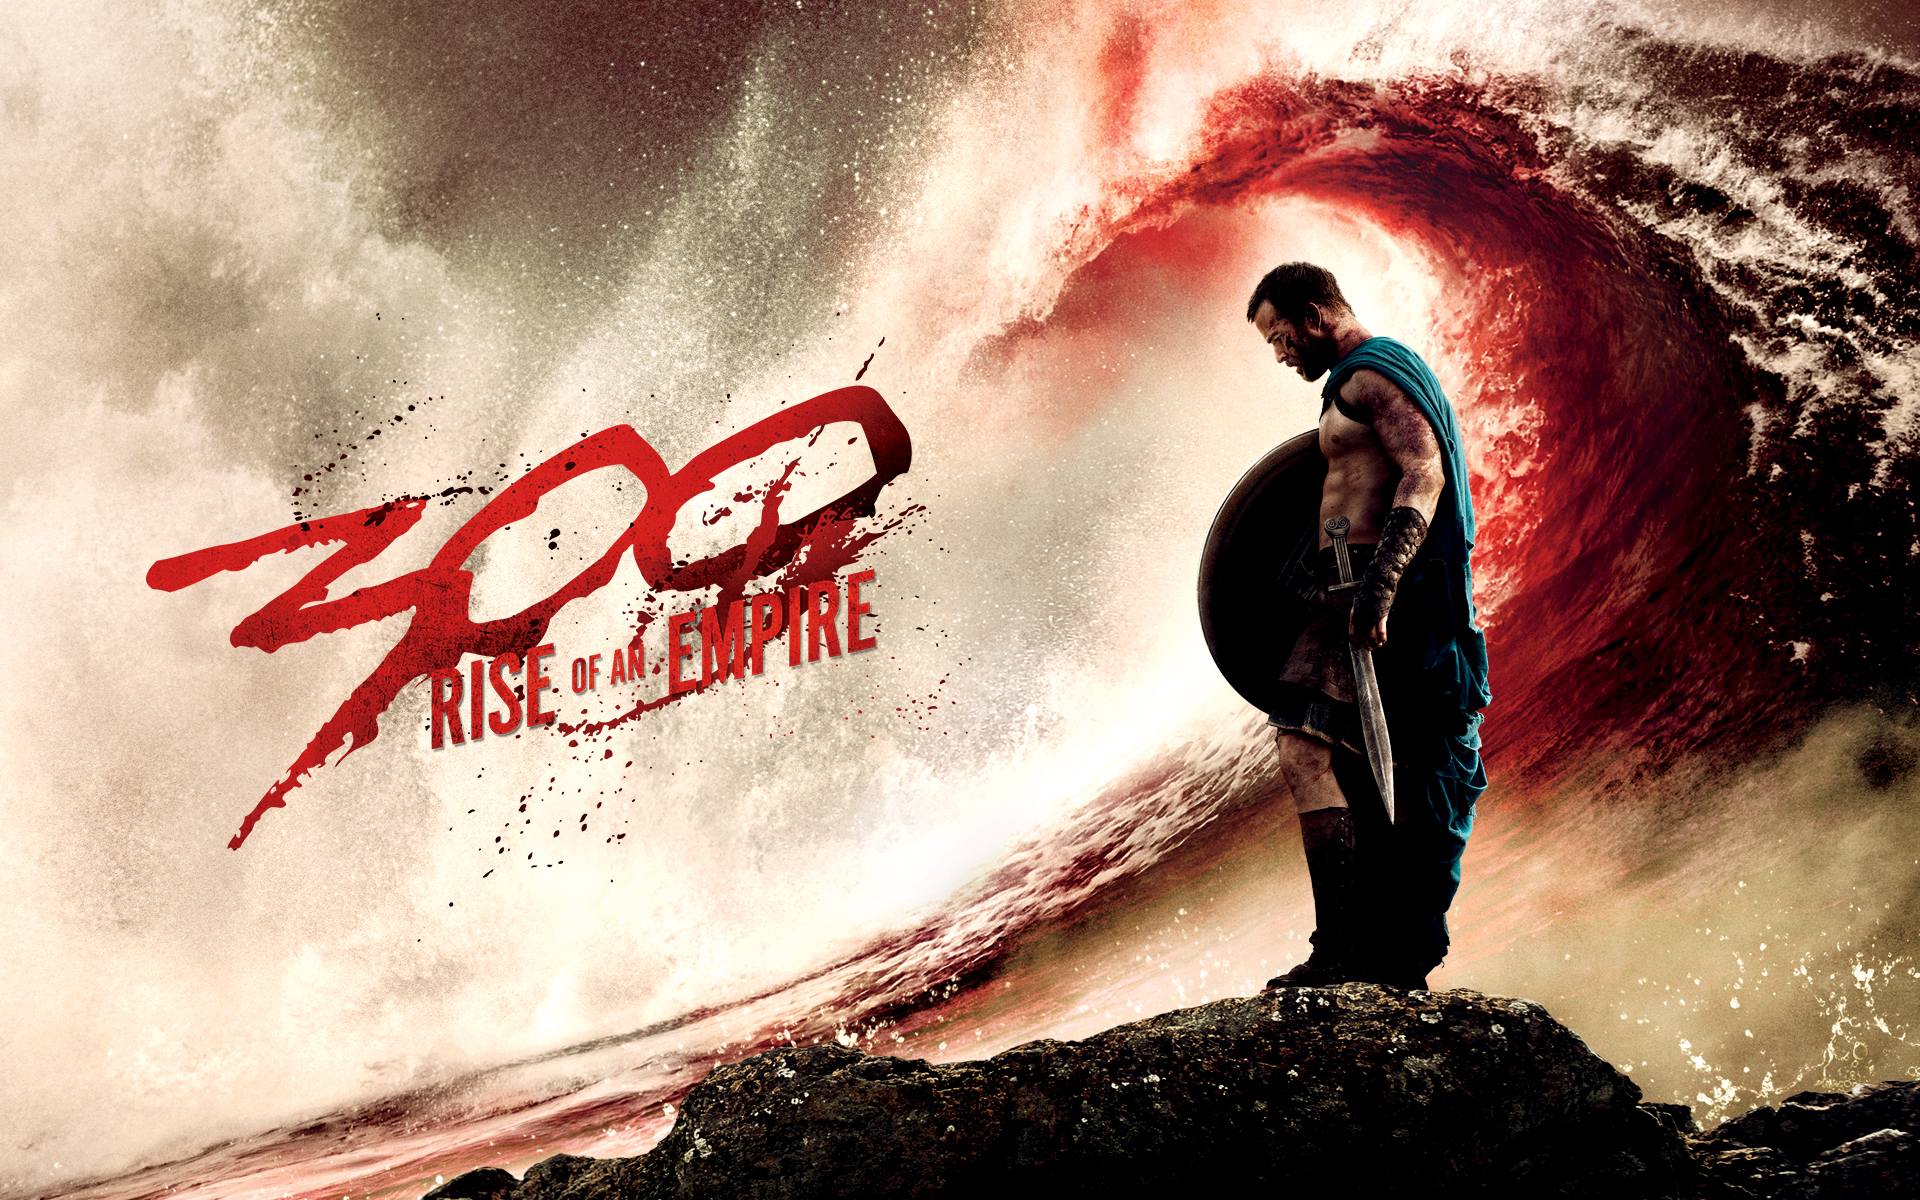 300 Rise Of An Empire Wallpaper 1920x1200 80171